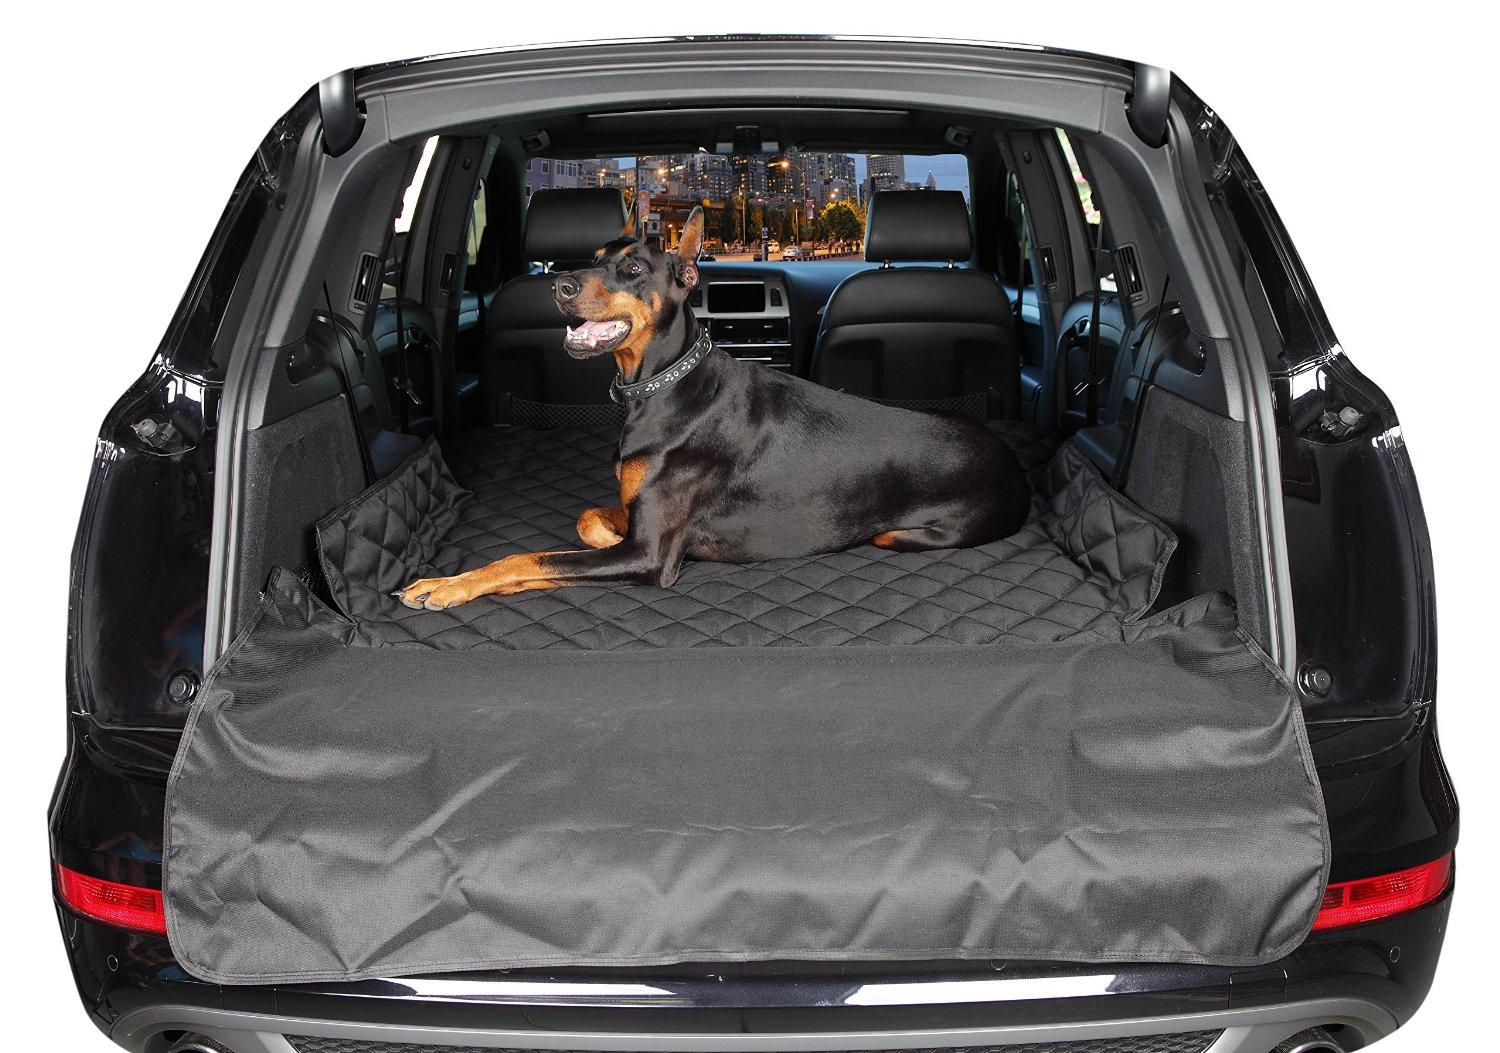 $5 OFF Cargo Liner For SUVs Waterproof Durable Material Sale @ amazon.com